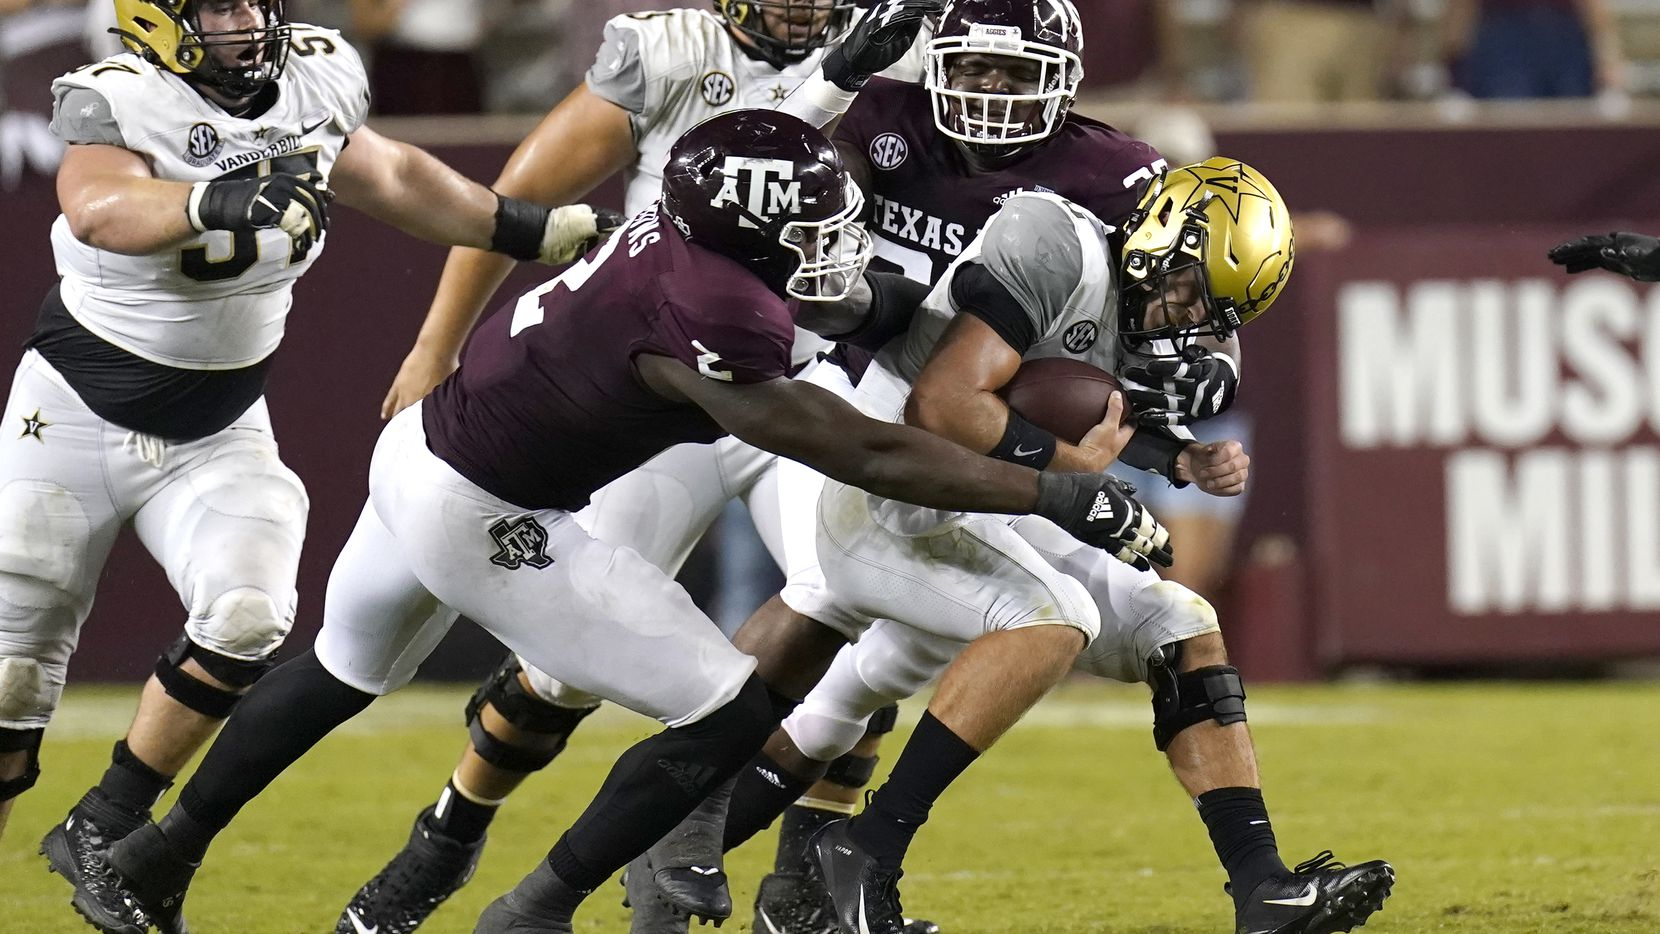 Vanderbilt quarterback Ken Seals, right, is sacked by Texas A&M's Micheal Clemons (2) McKinnley Jackson during the second half of an NCAA college football game Saturday, Sept. 26, 2020, in College Station, Texas. Texas A&M won 17-12.